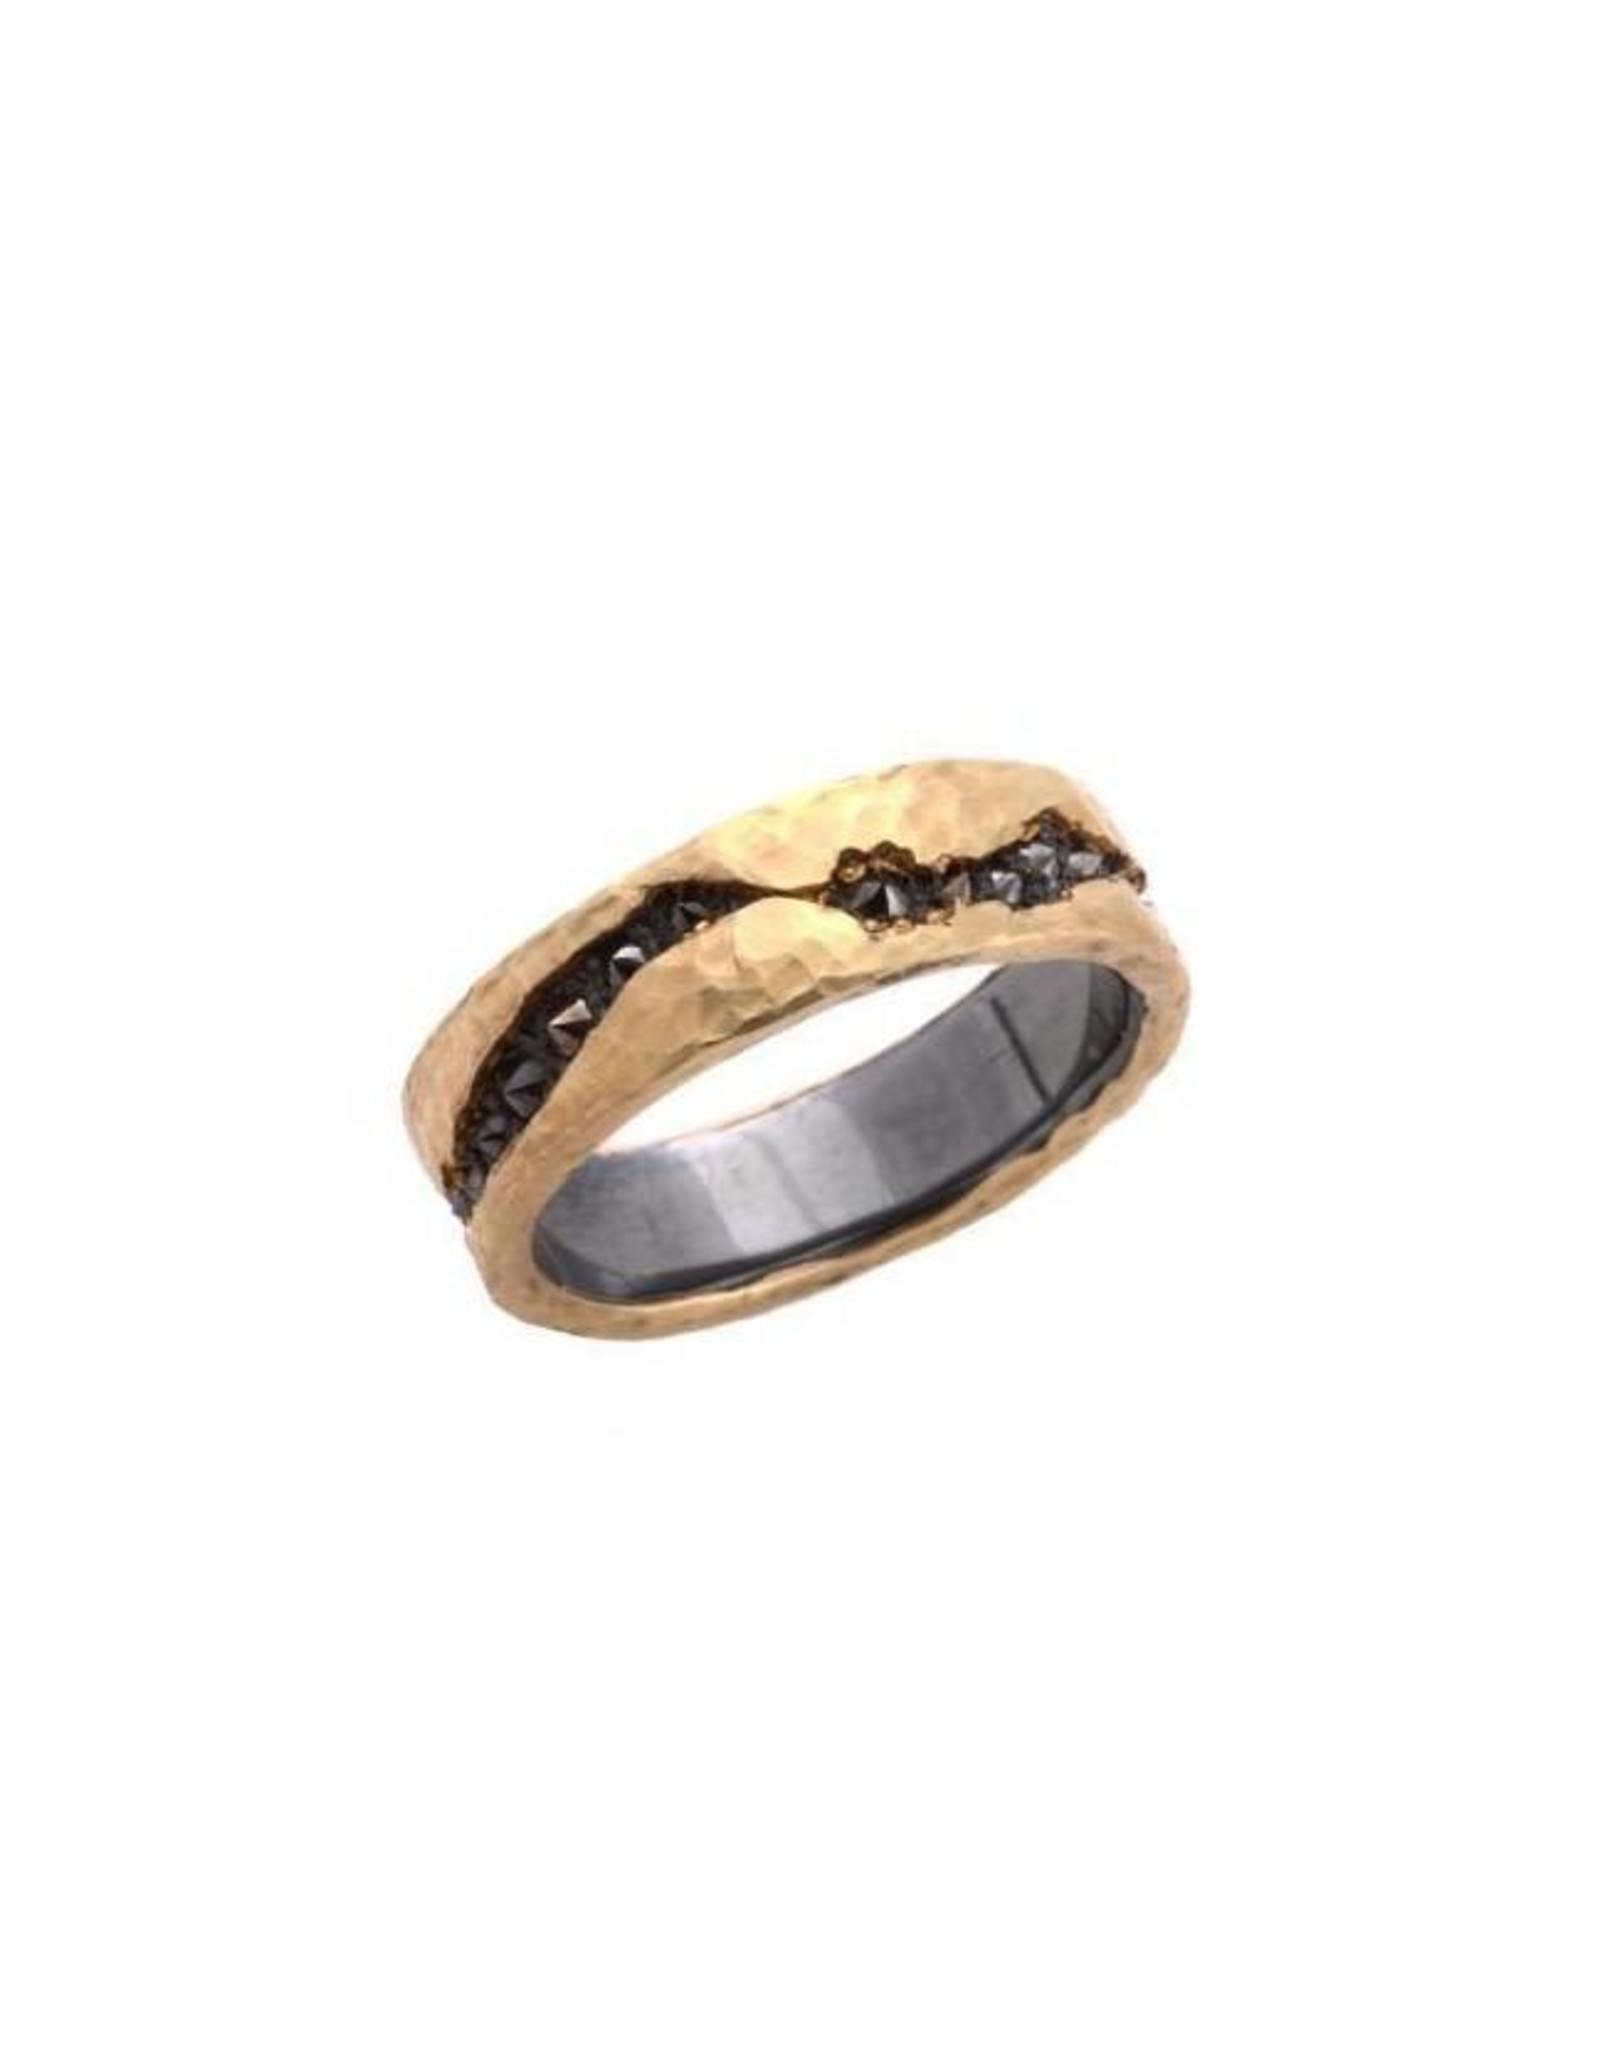 TAP by Todd Pownell Fissure Ring with Inverted Diamonds - 18K Yellow Gold